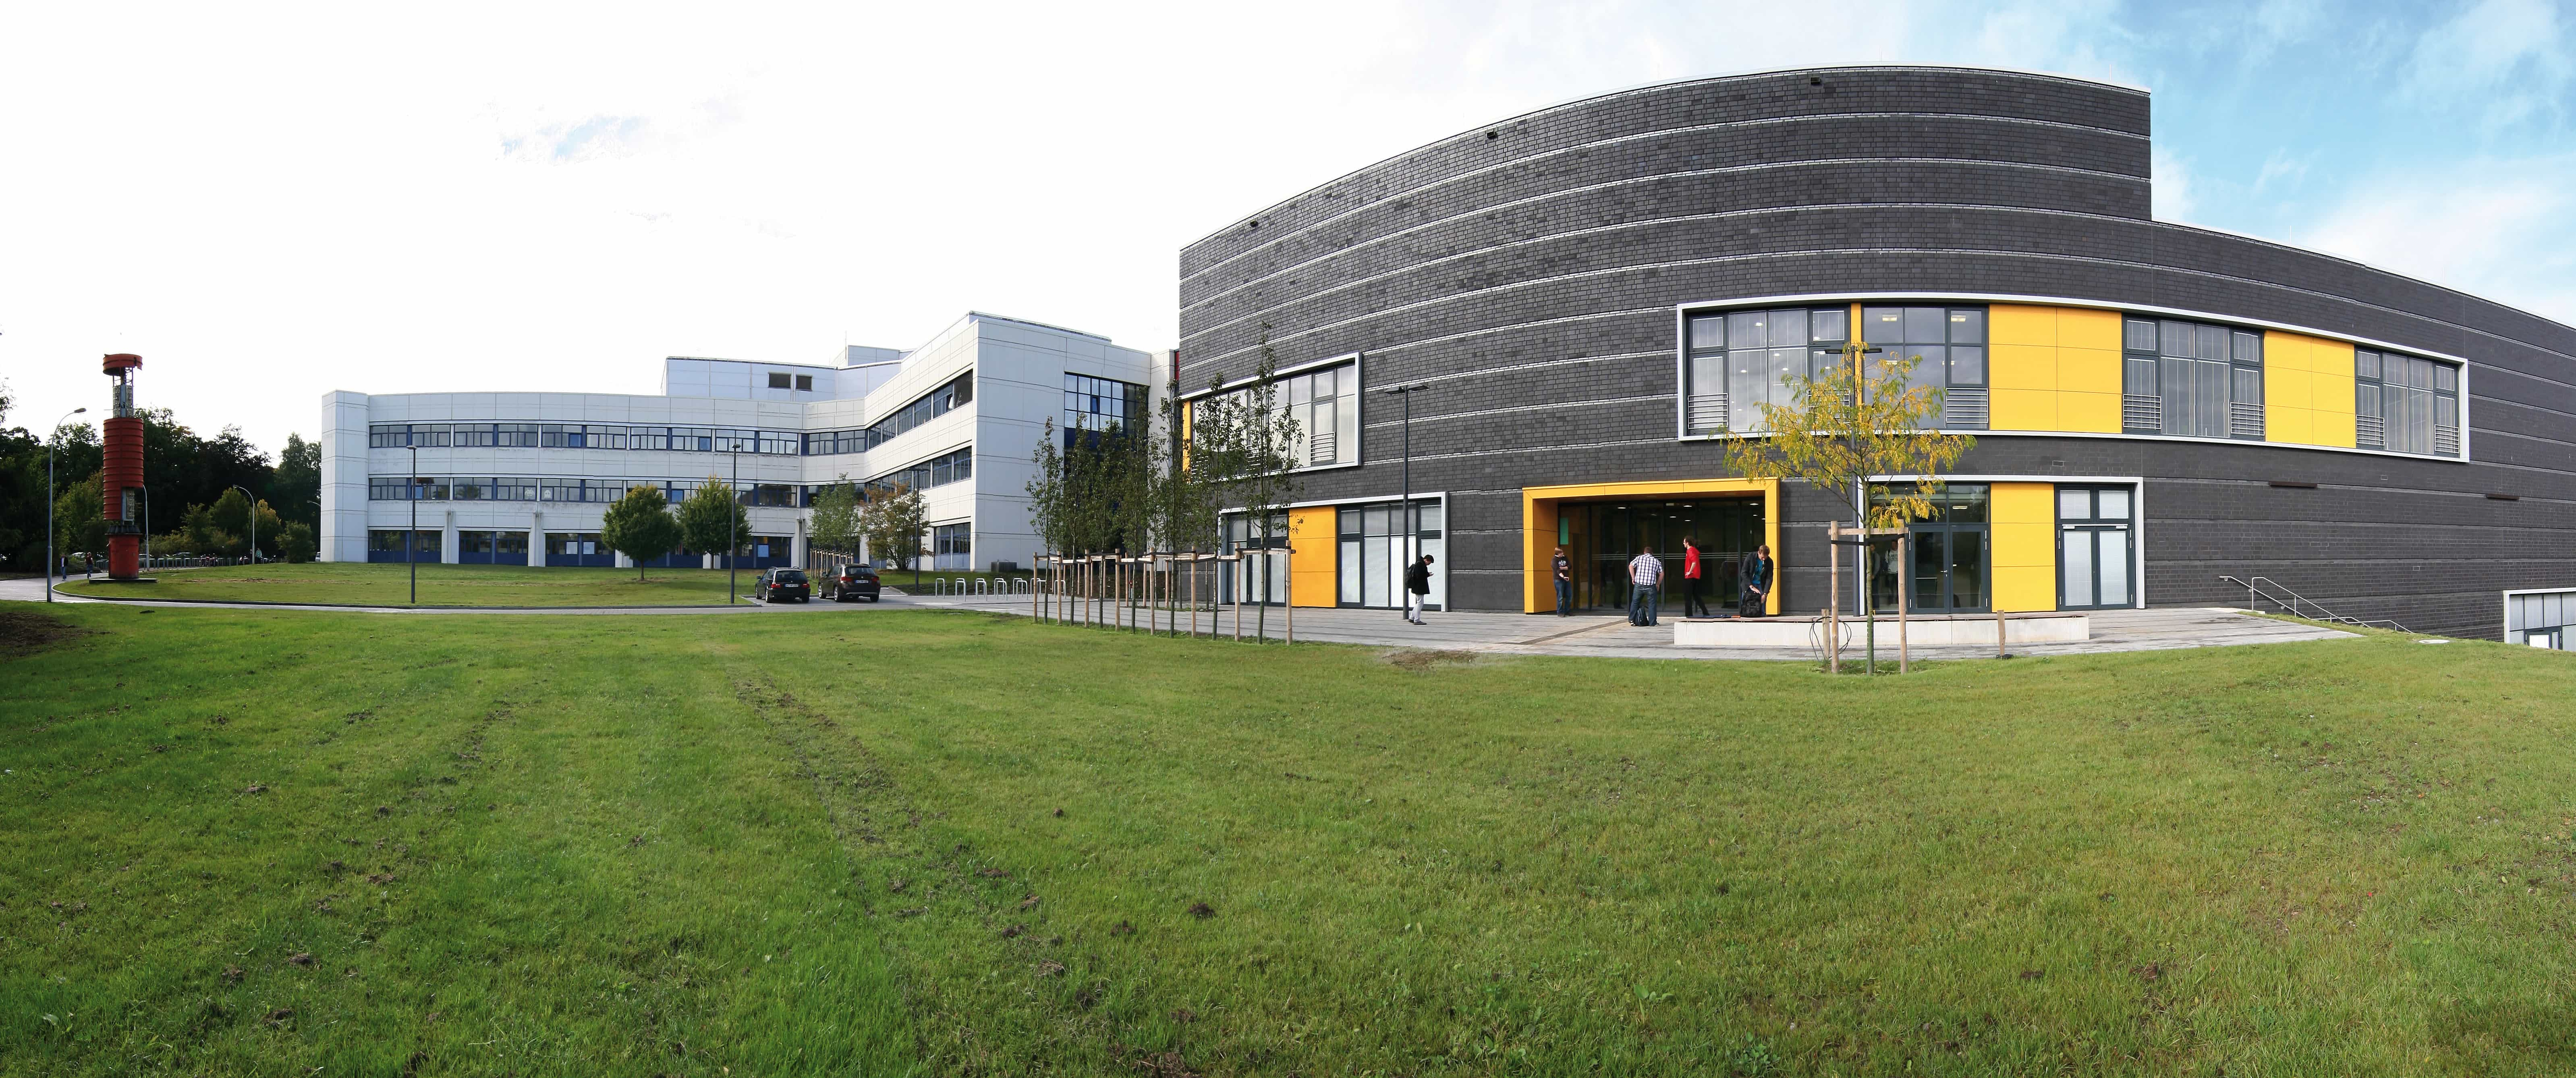 Building of the FH Aachen in the Eupener Strasse